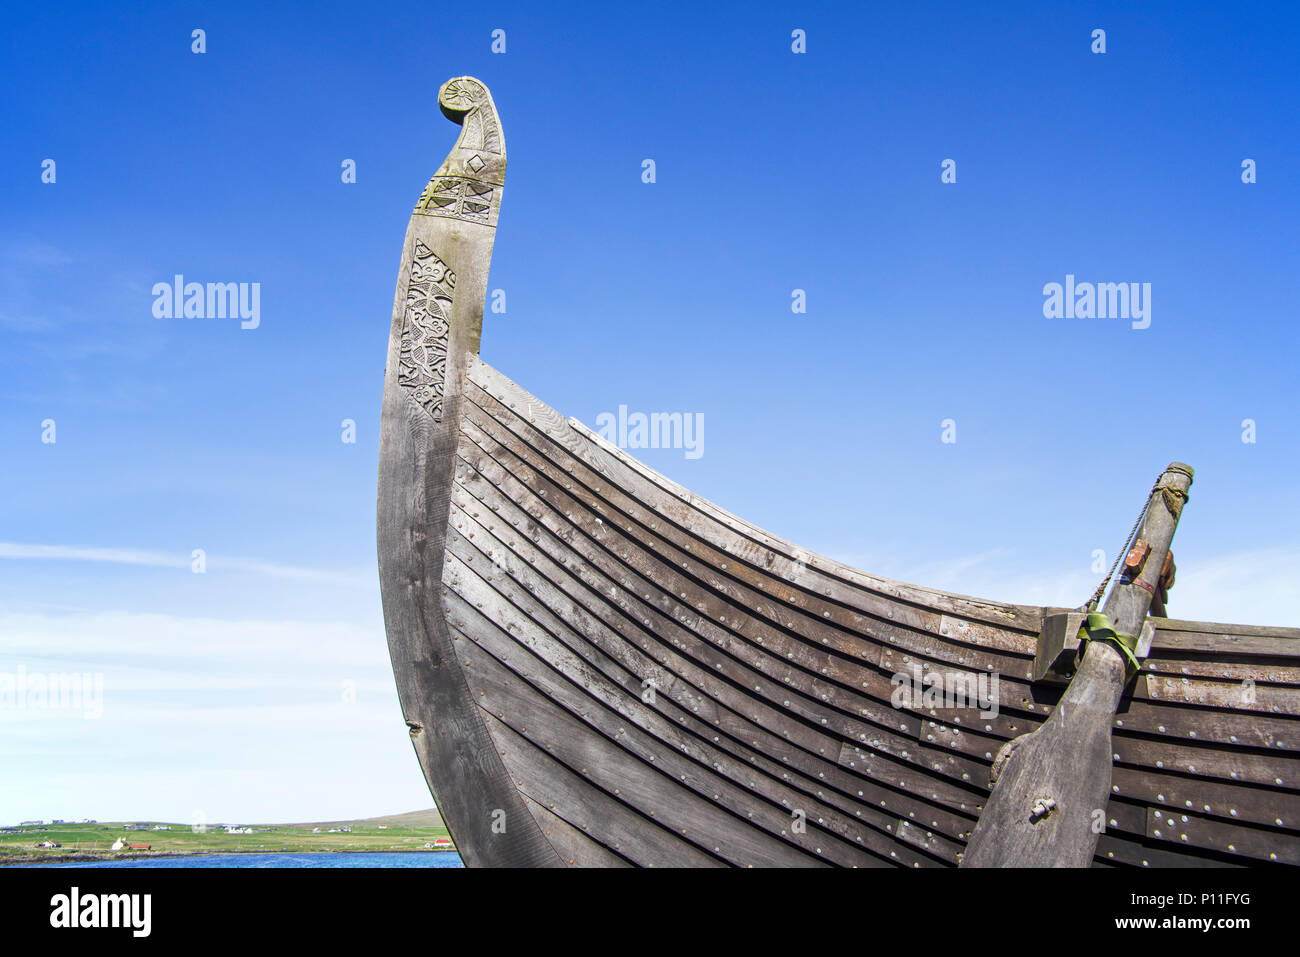 Steering oar at stern of Skidbladner, full size replica of the Gokstad ship at Brookpoint, Unst, Shetland Islands, Scotland, UK - Stock Image